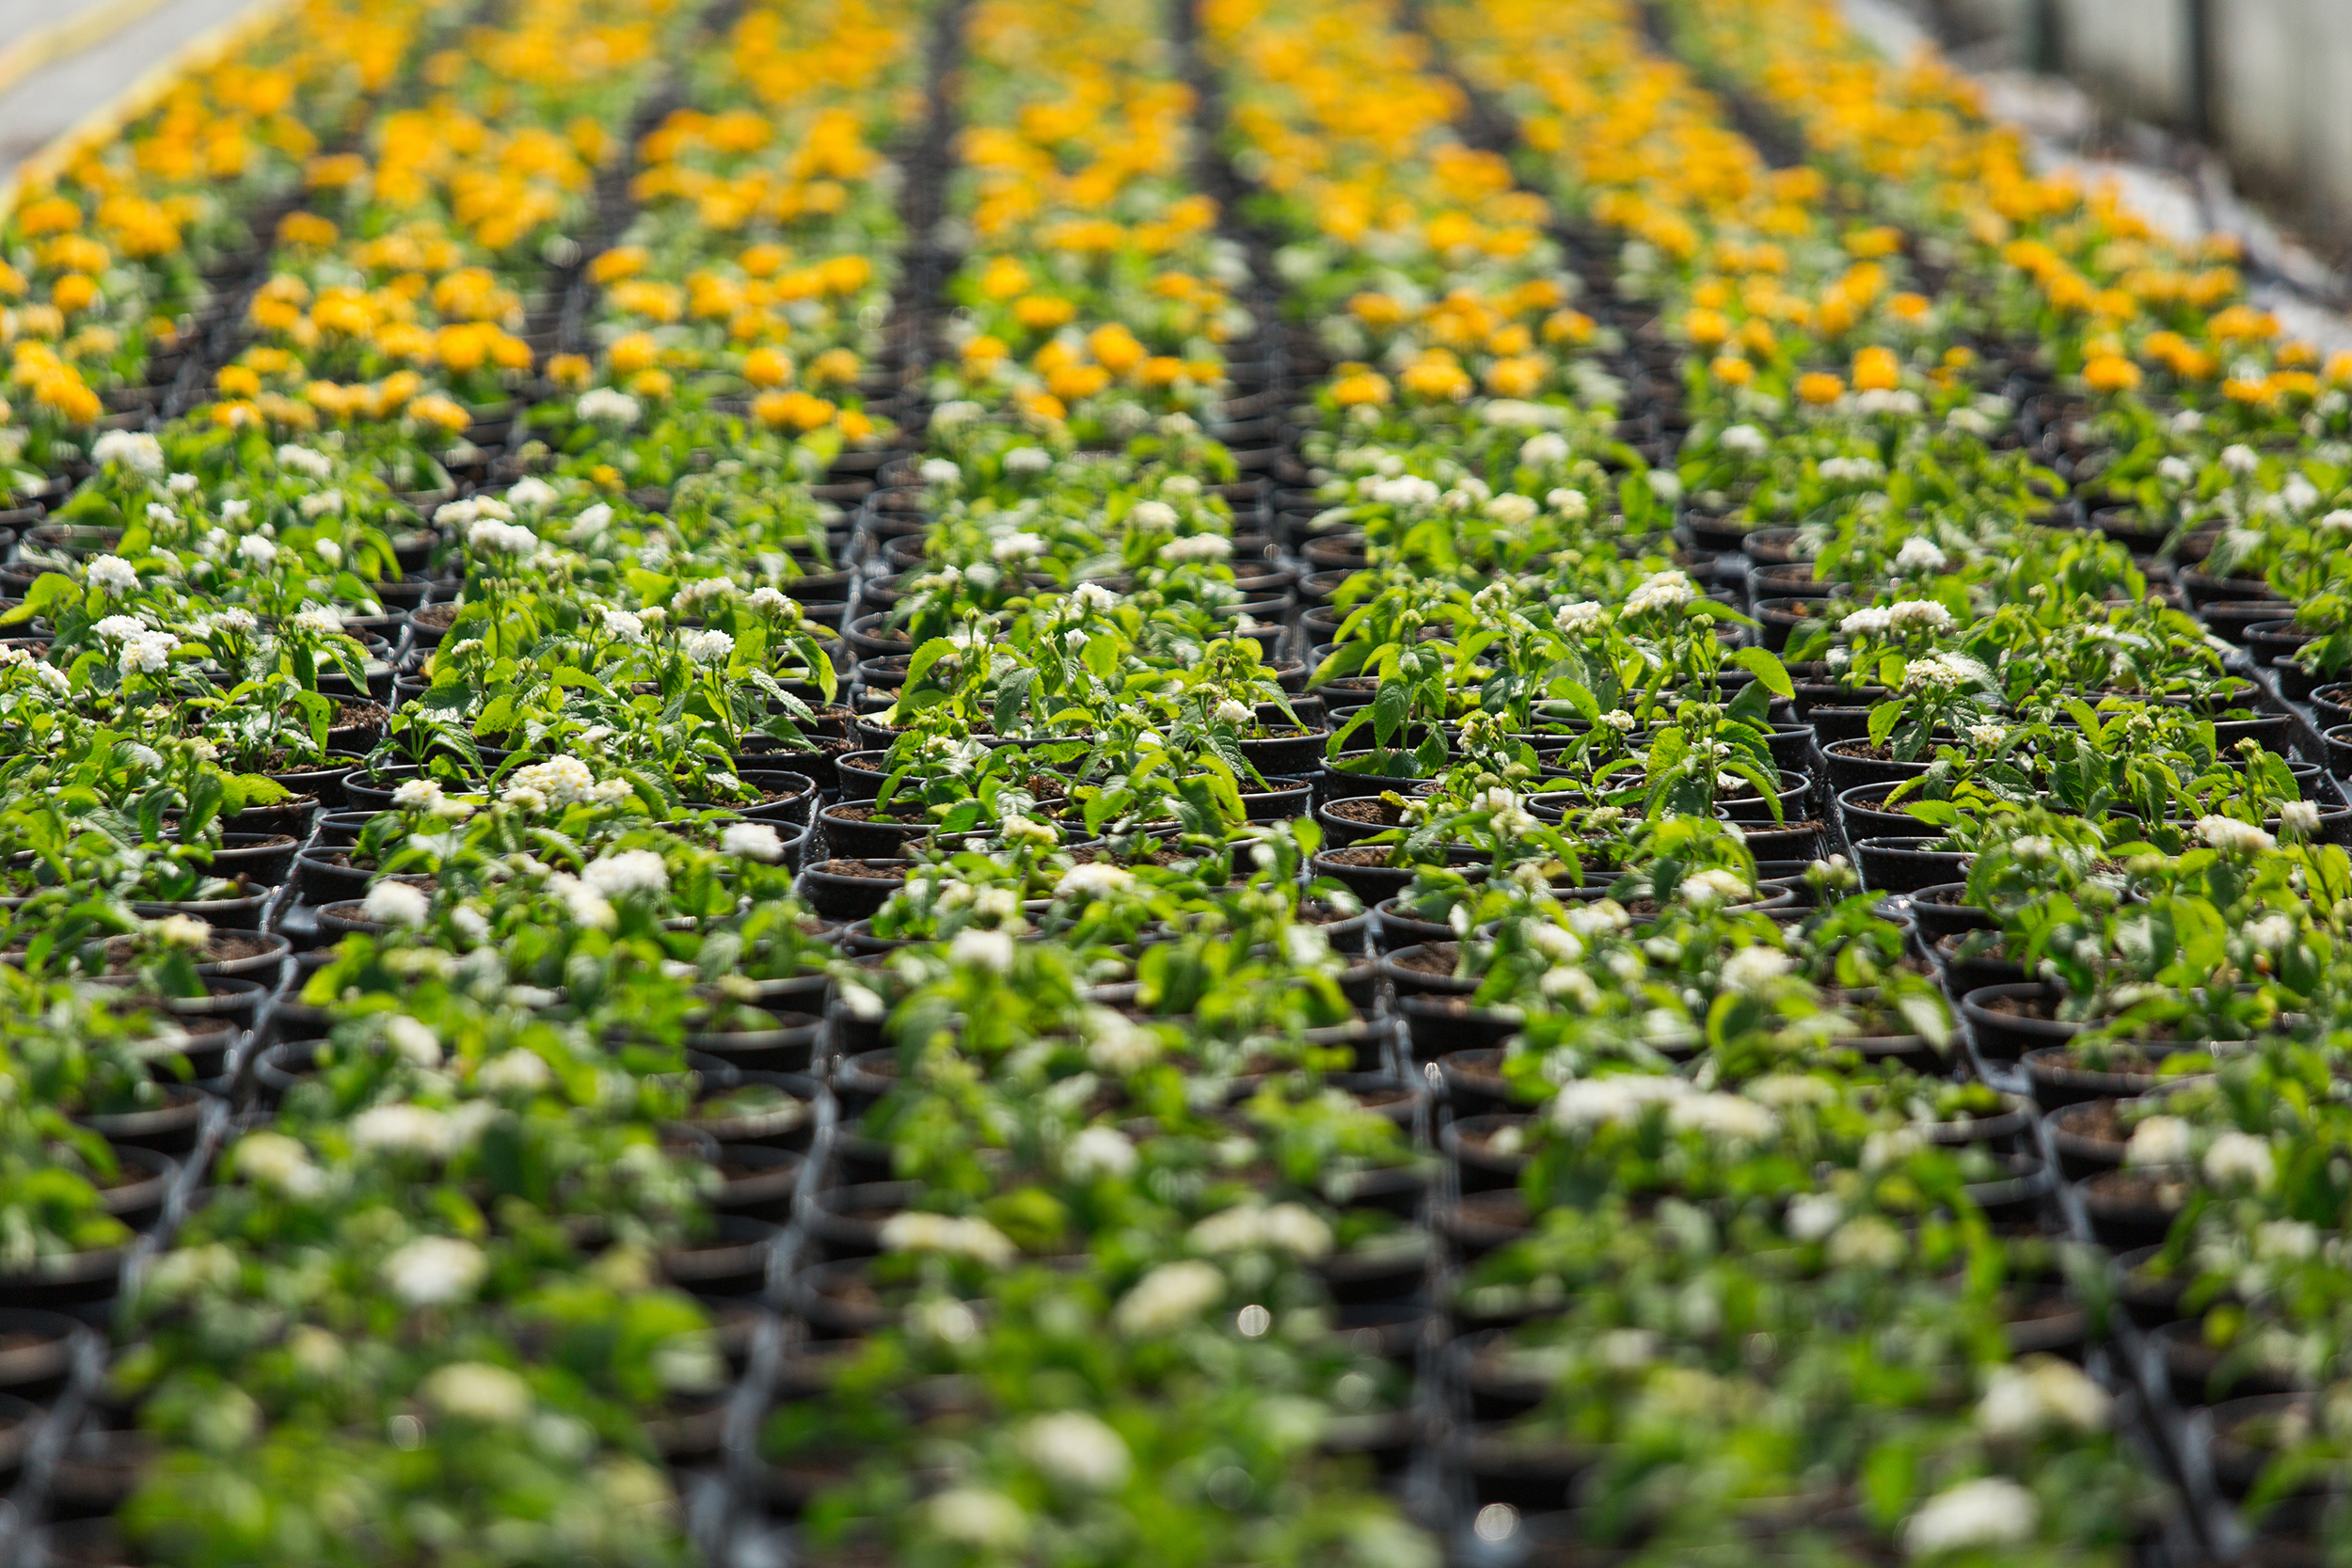 The focus sectors are tea, agro and allied products, food processing, floriculture, sericulture, bamboo, traditional handloom and handicraft products